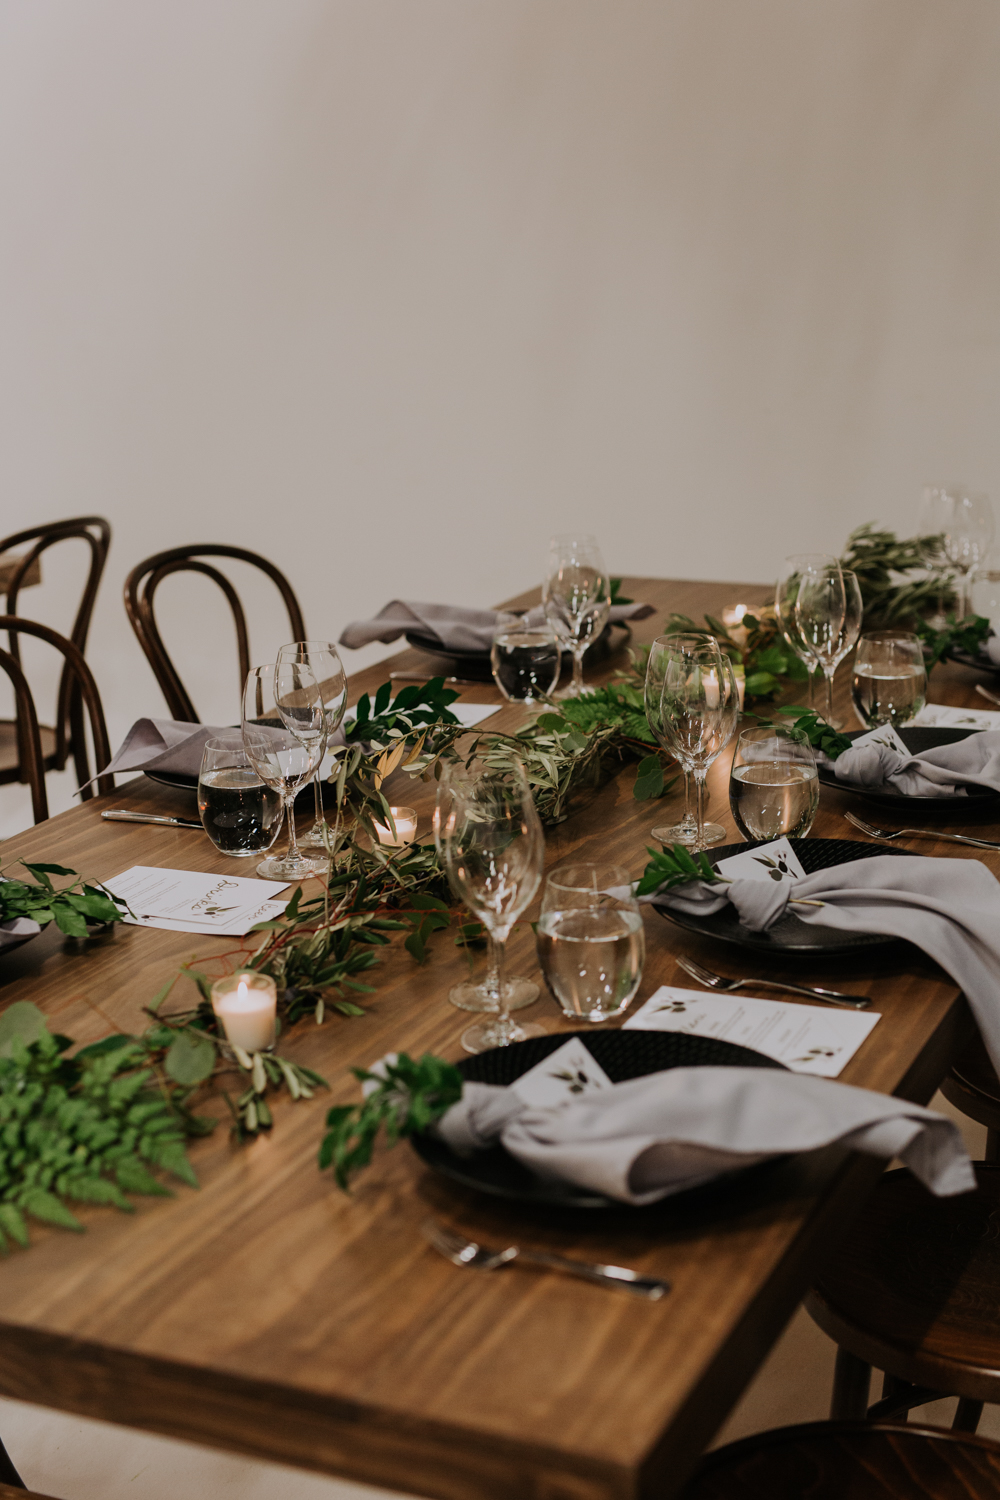 white+white weddings and events carrie and jay real wedding styling bentwood chairs banquet tables timber rustic studio warehouse venue greenery foliage